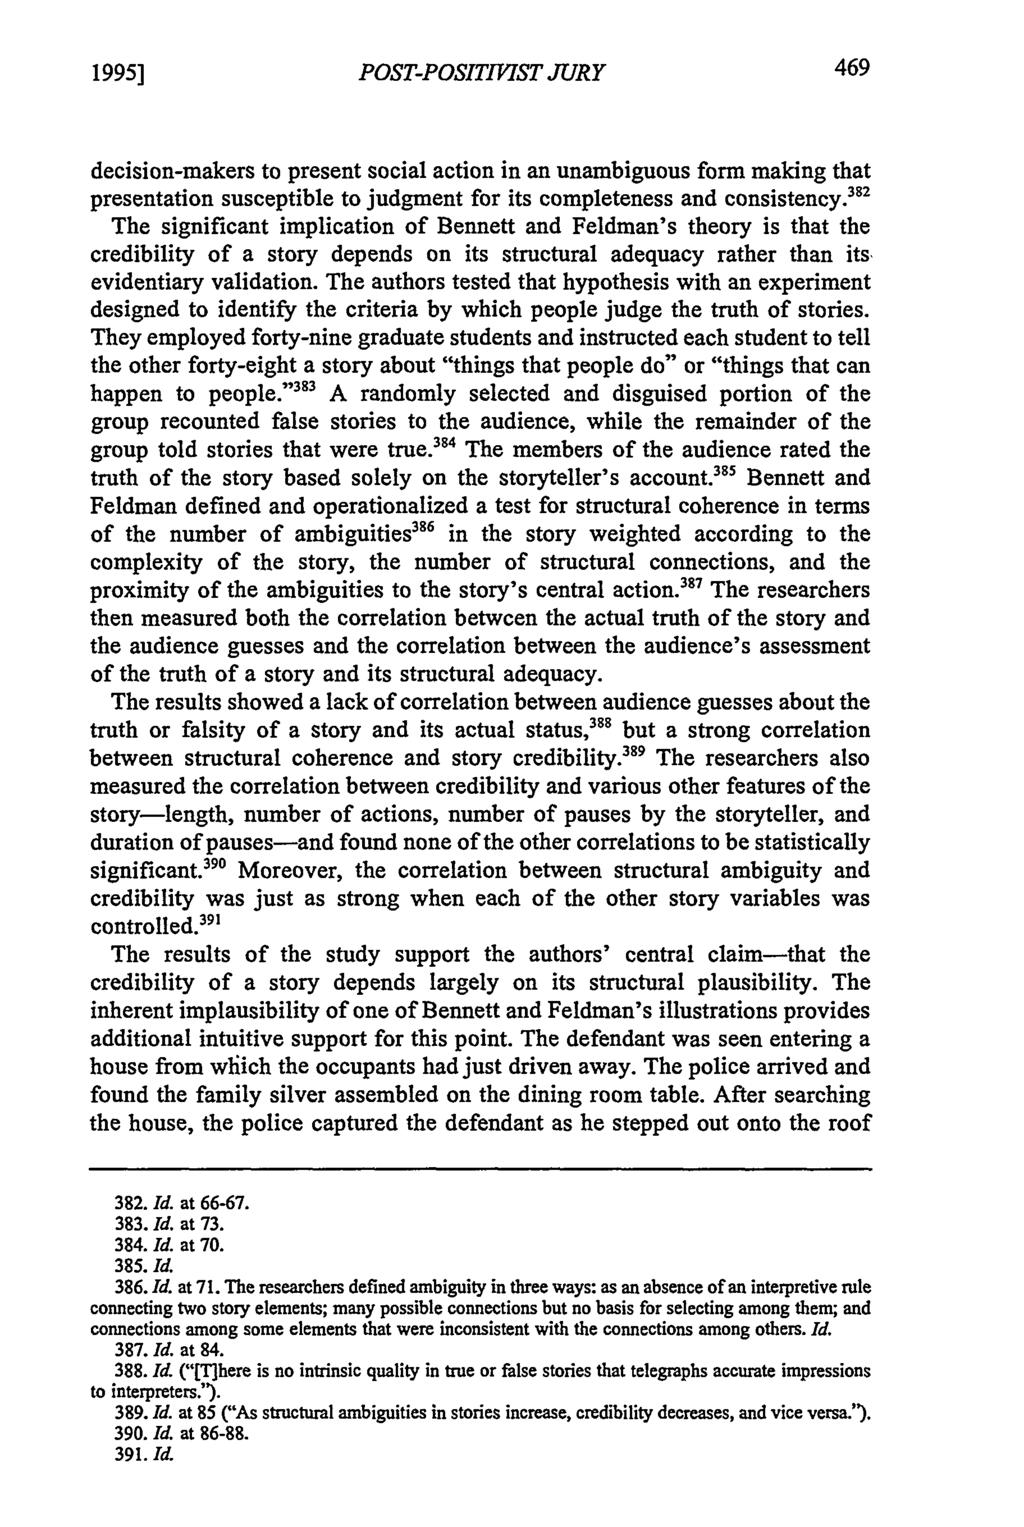 1995] POST-POSITIVIST JURY decision-makers to present social action in an unambiguous form making that presentation susceptible to judgment for its completeness and consistency.